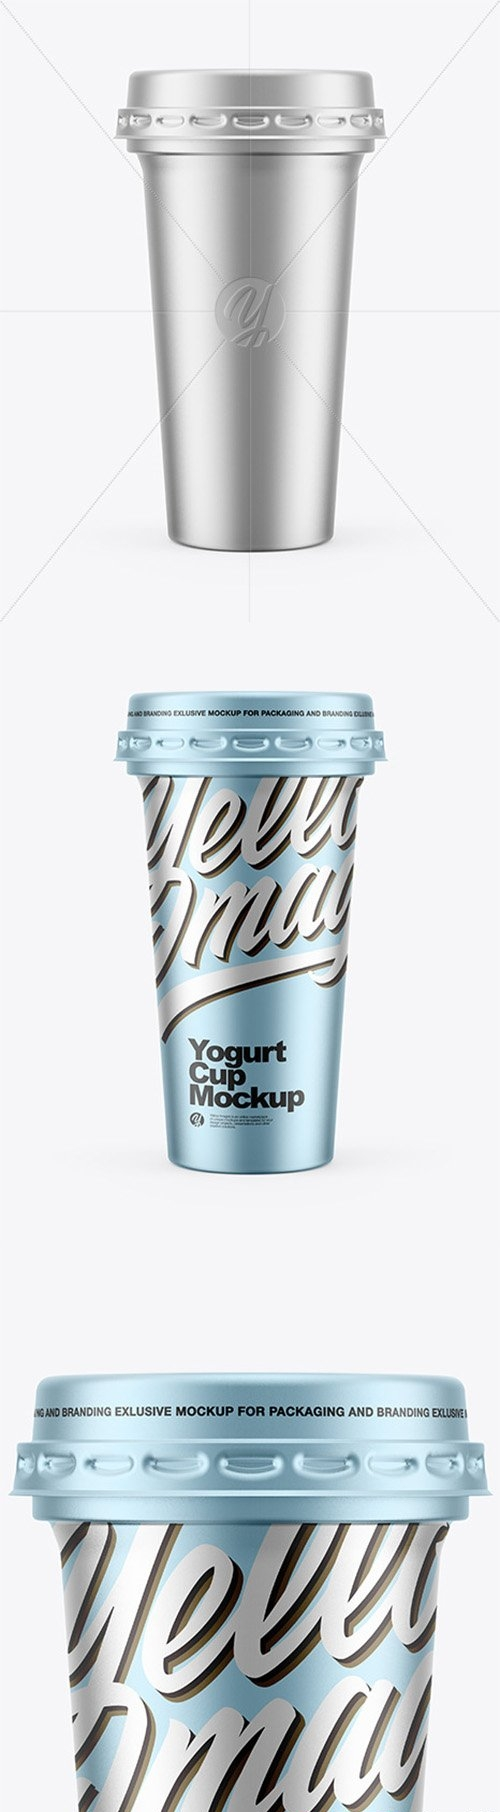 Metallic Yogurt Cup Mockup 65831